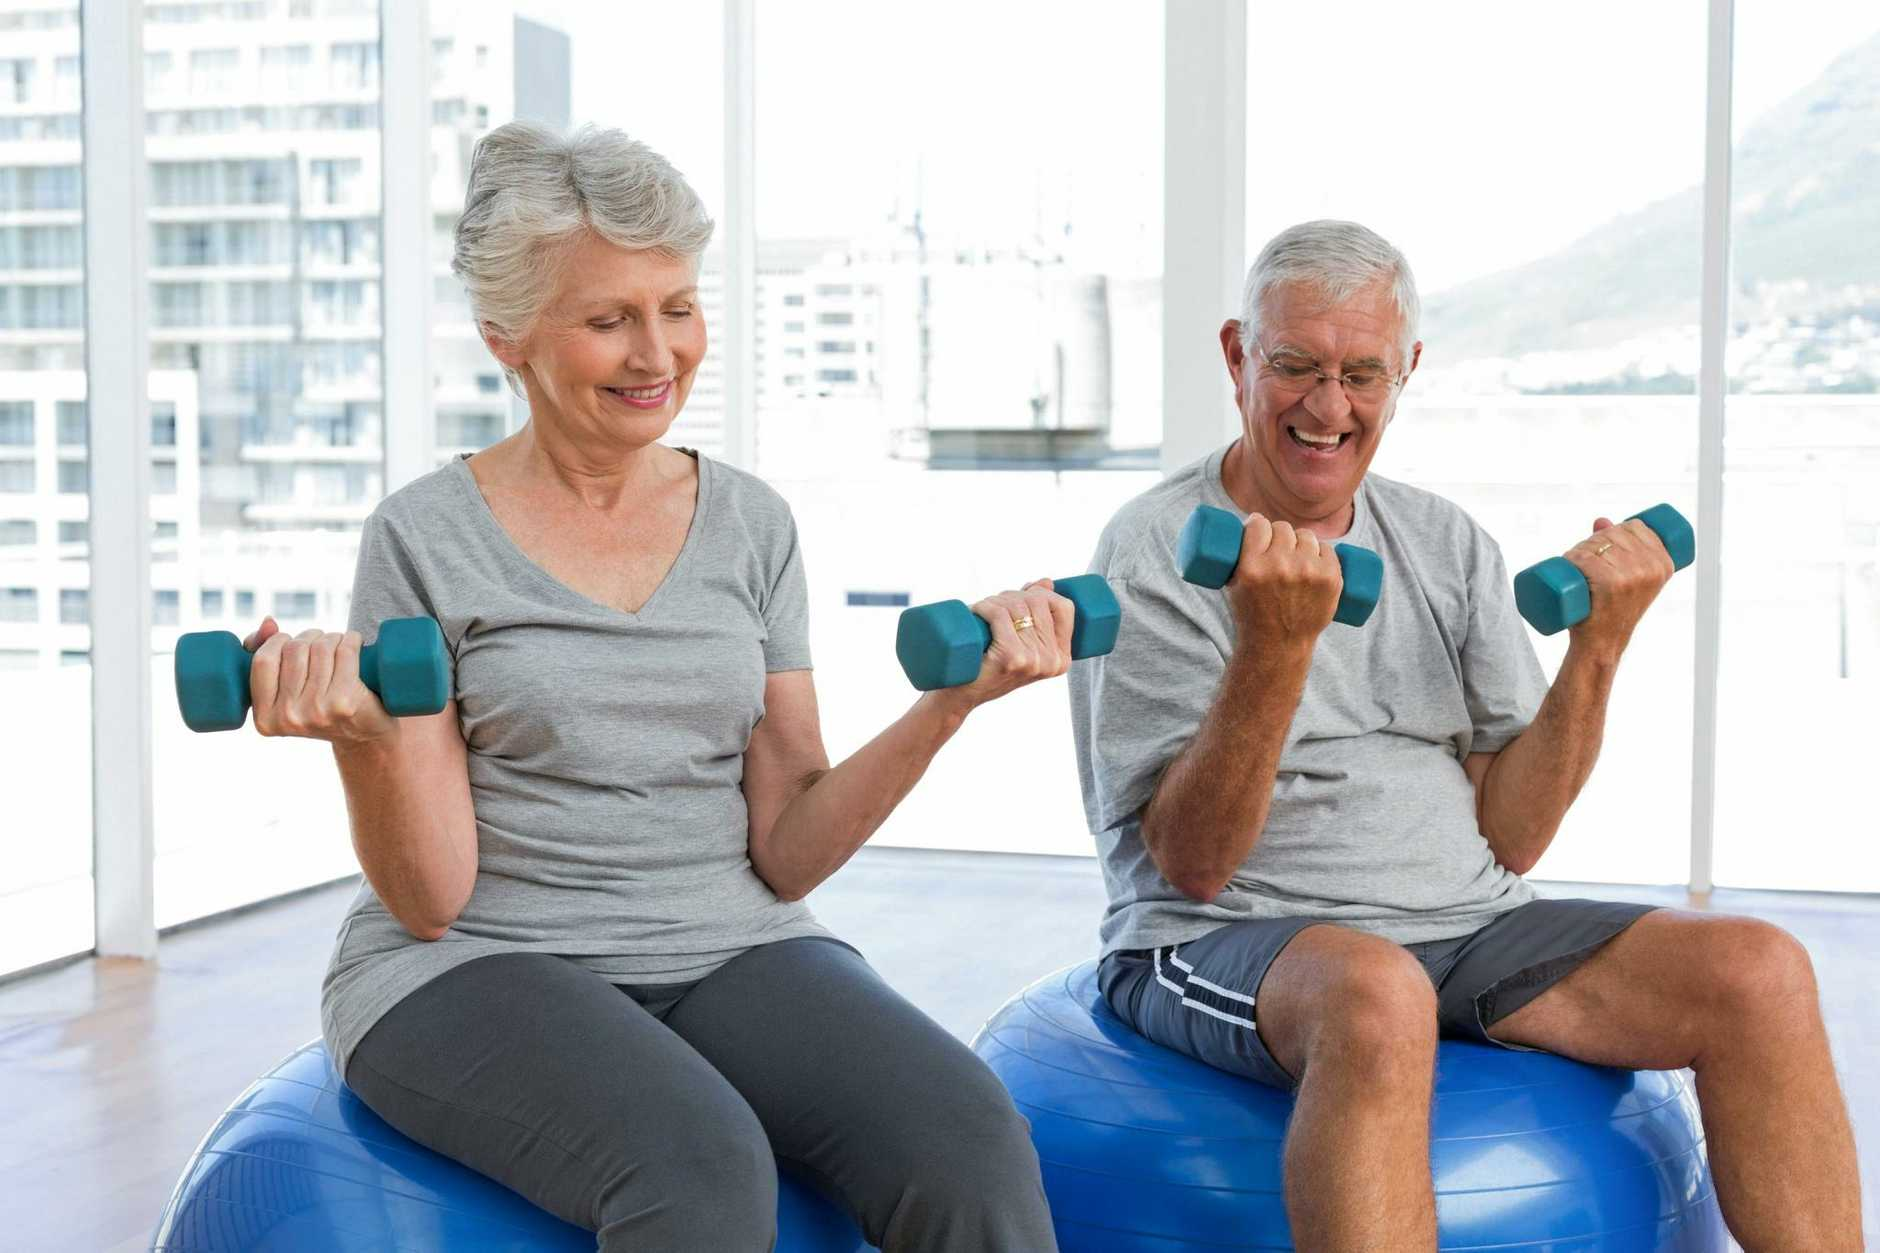 Physical and mental exercise have been shown to fight the onset of dementia.